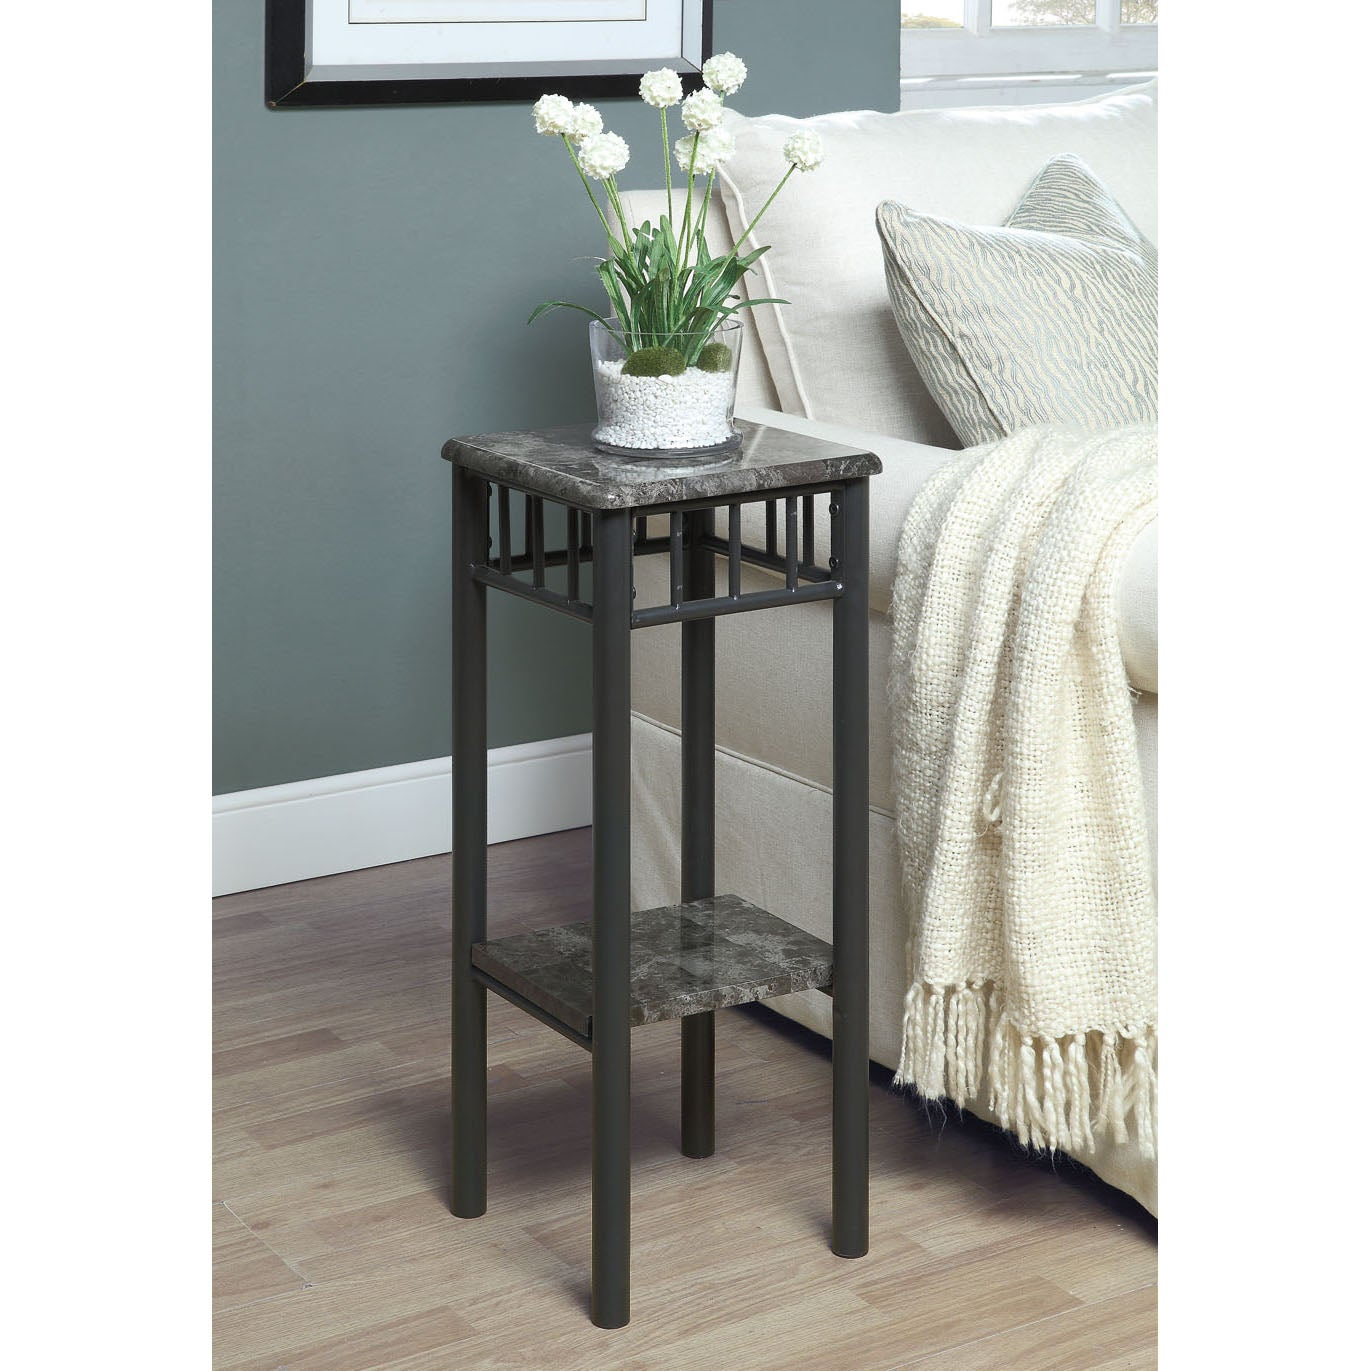 Grey Marble/ Charcoal Metal Plant Stand